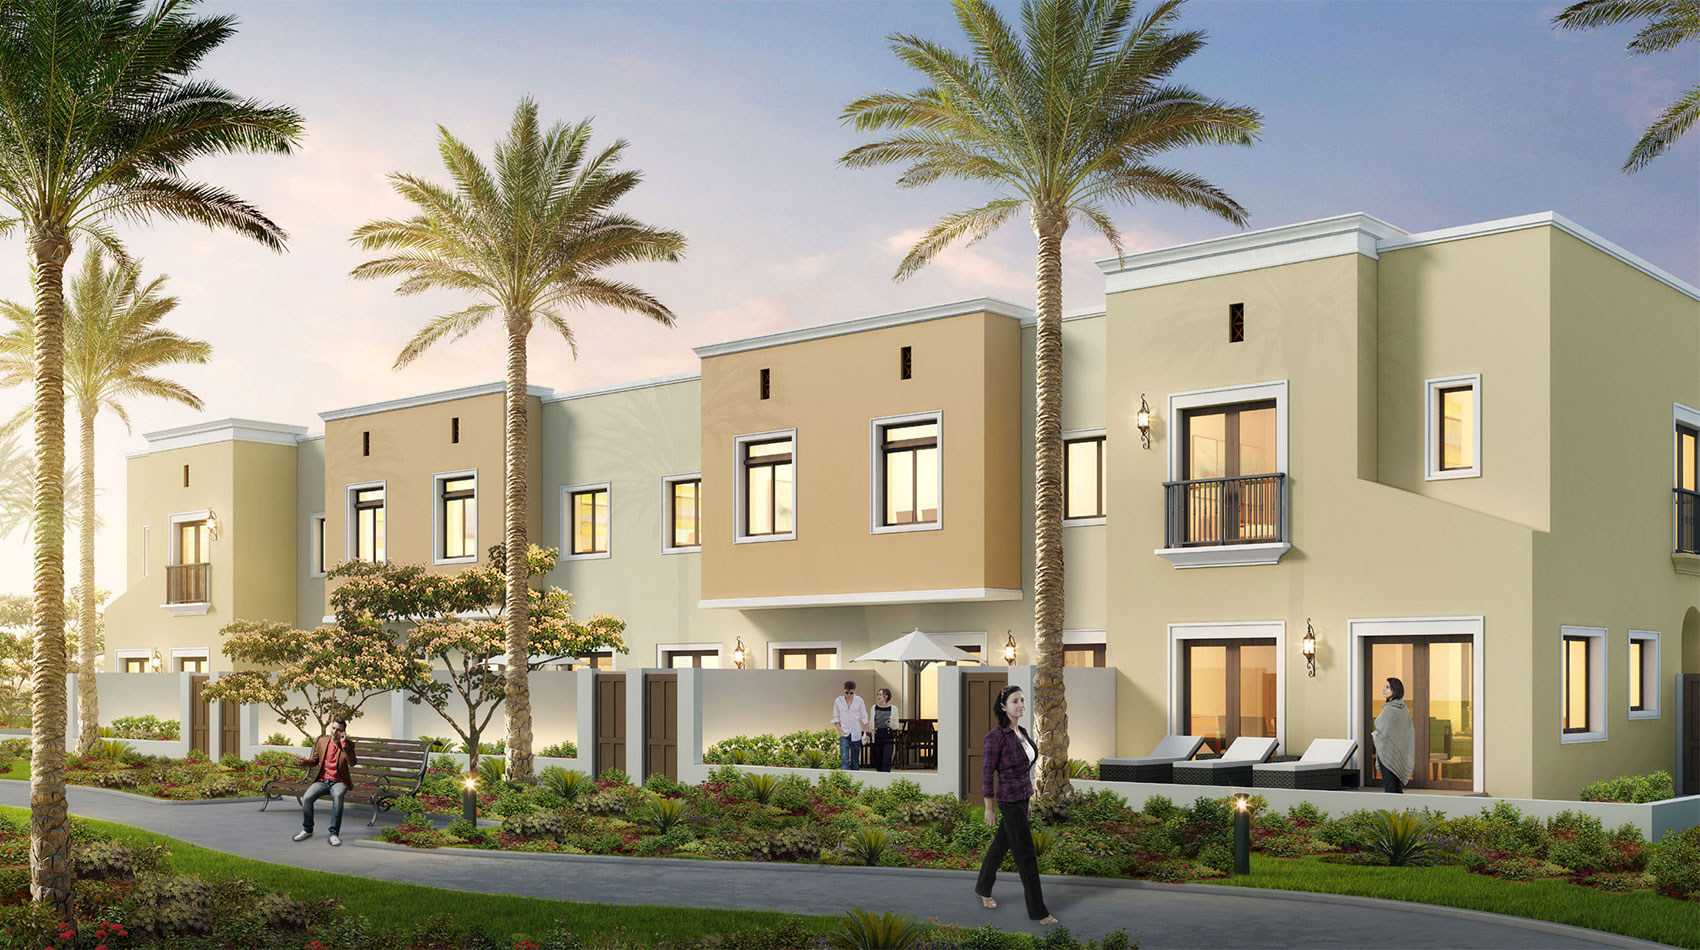 Villanova Amaranta Townhouses amenities